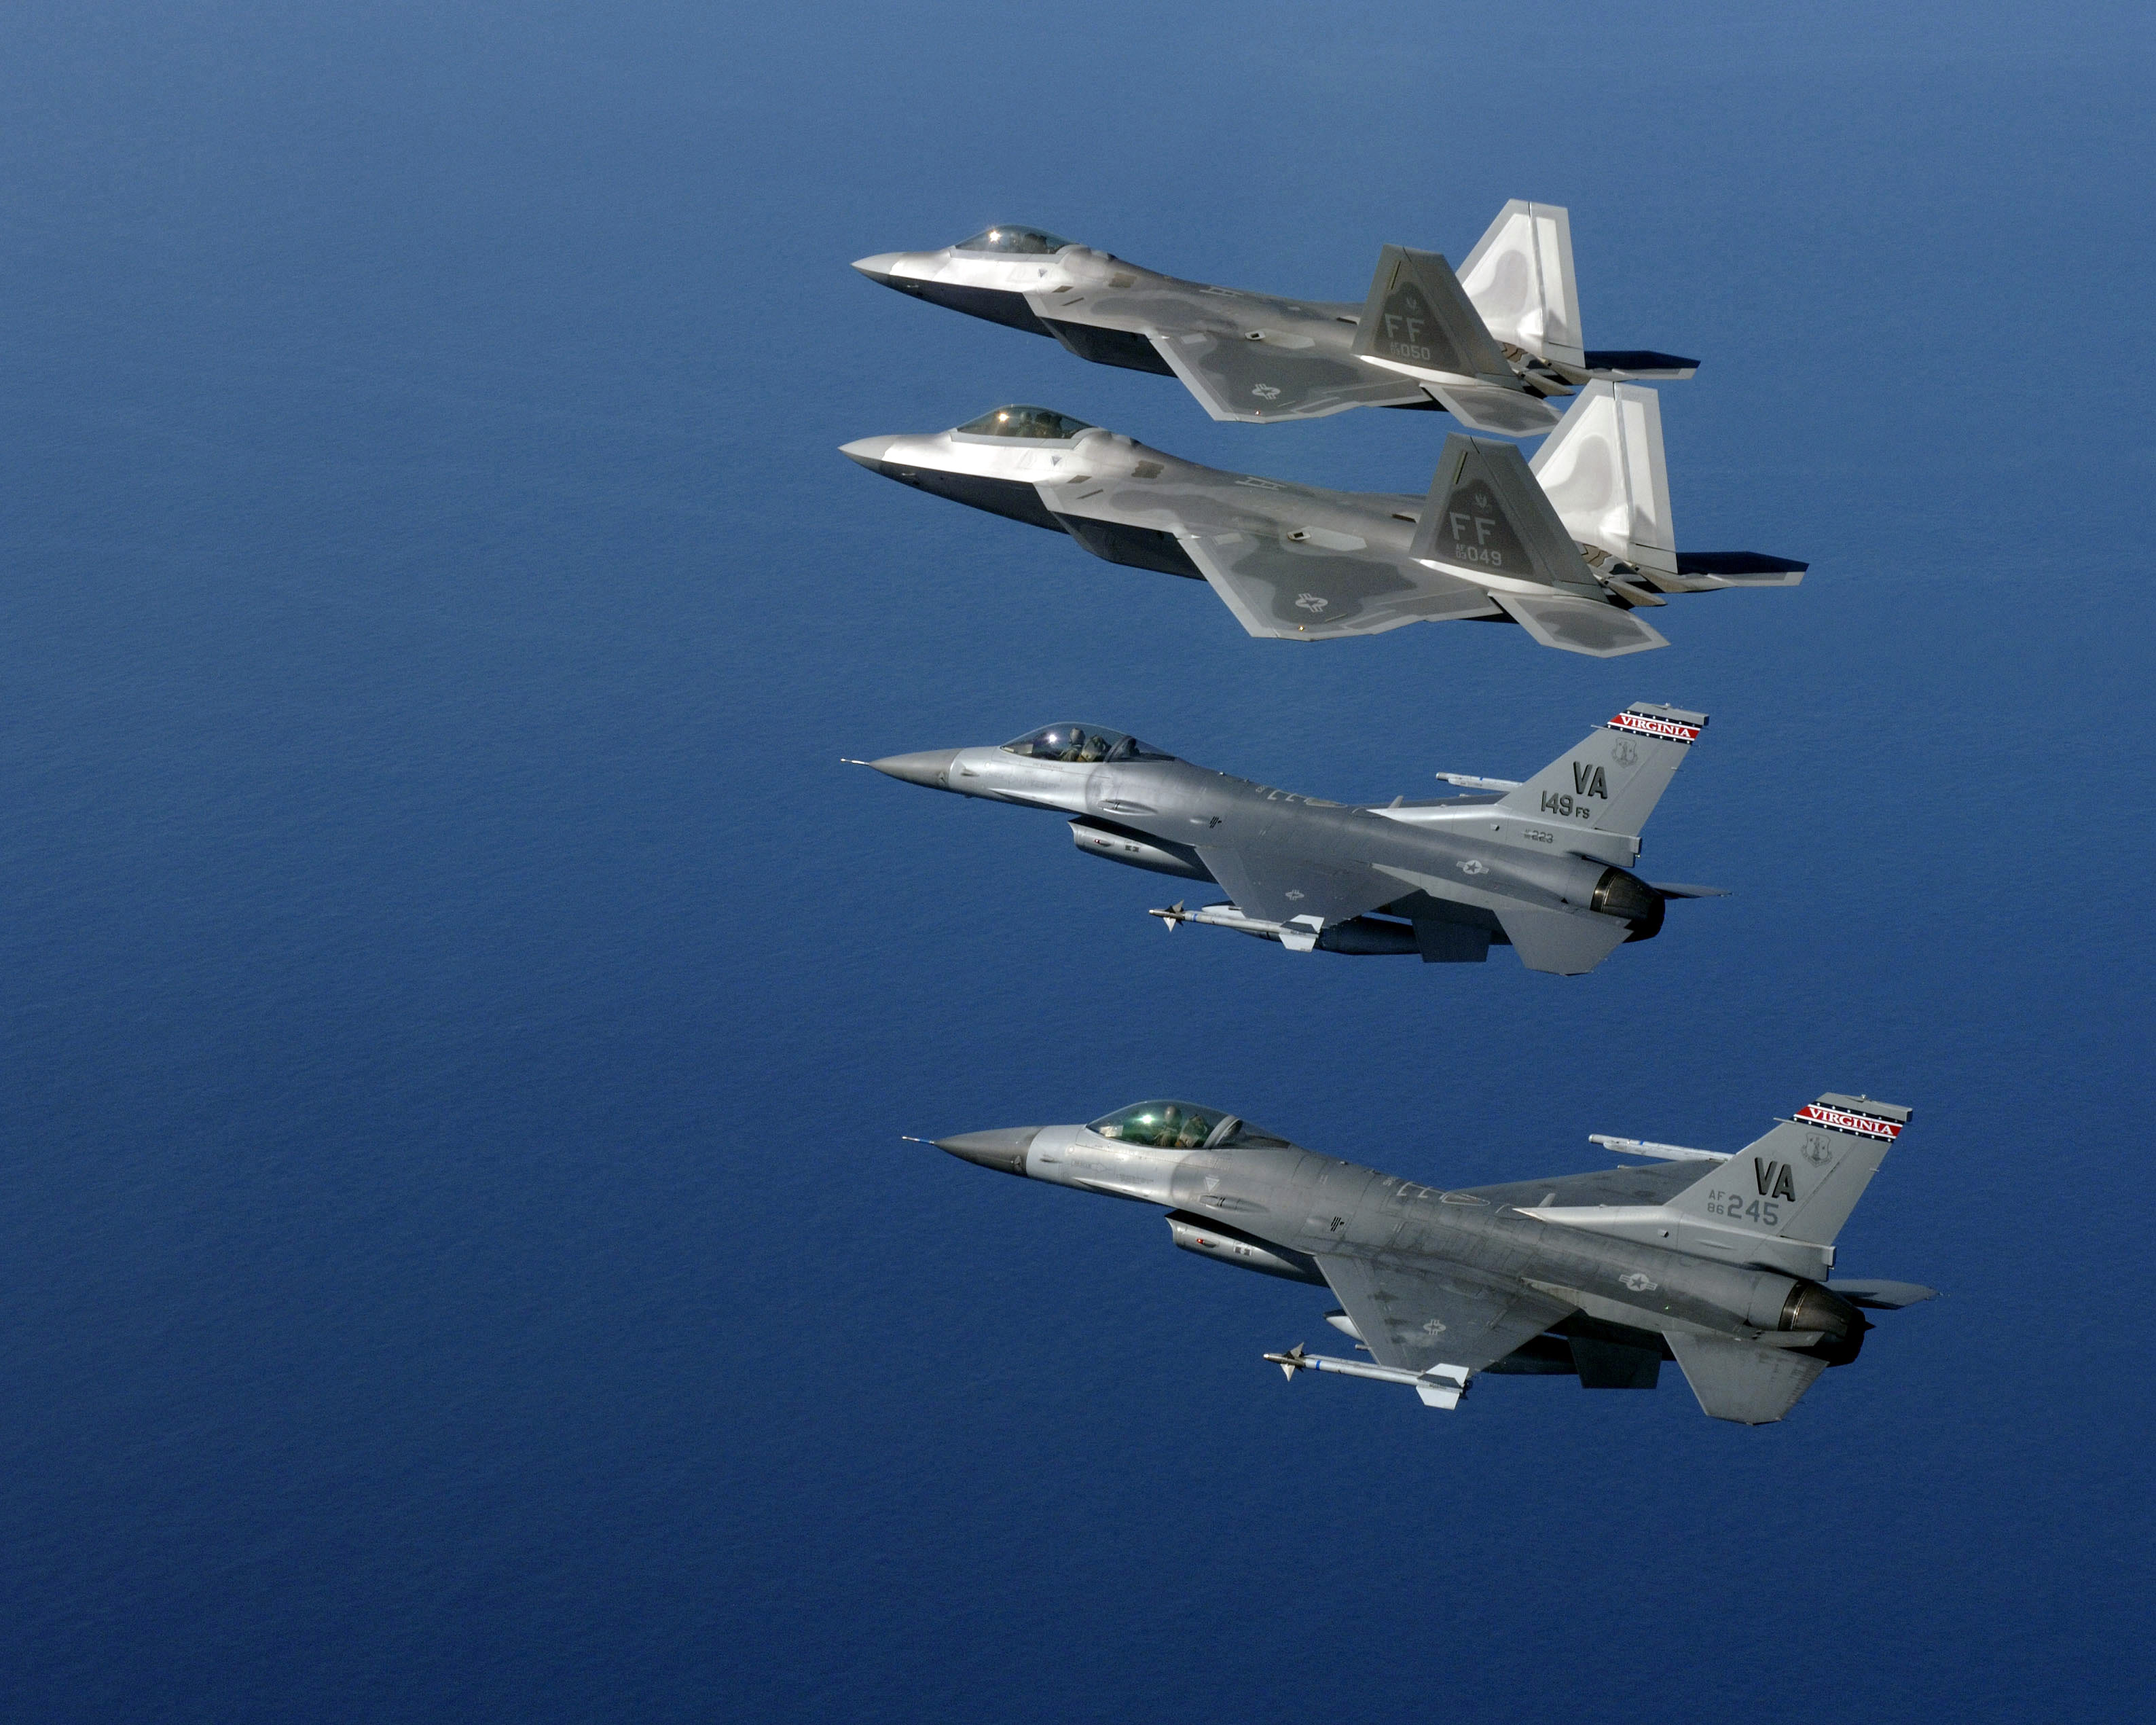 File:F-22As with Virginia ANG F-16Cs 2006.JPEG - Wikimedia ...